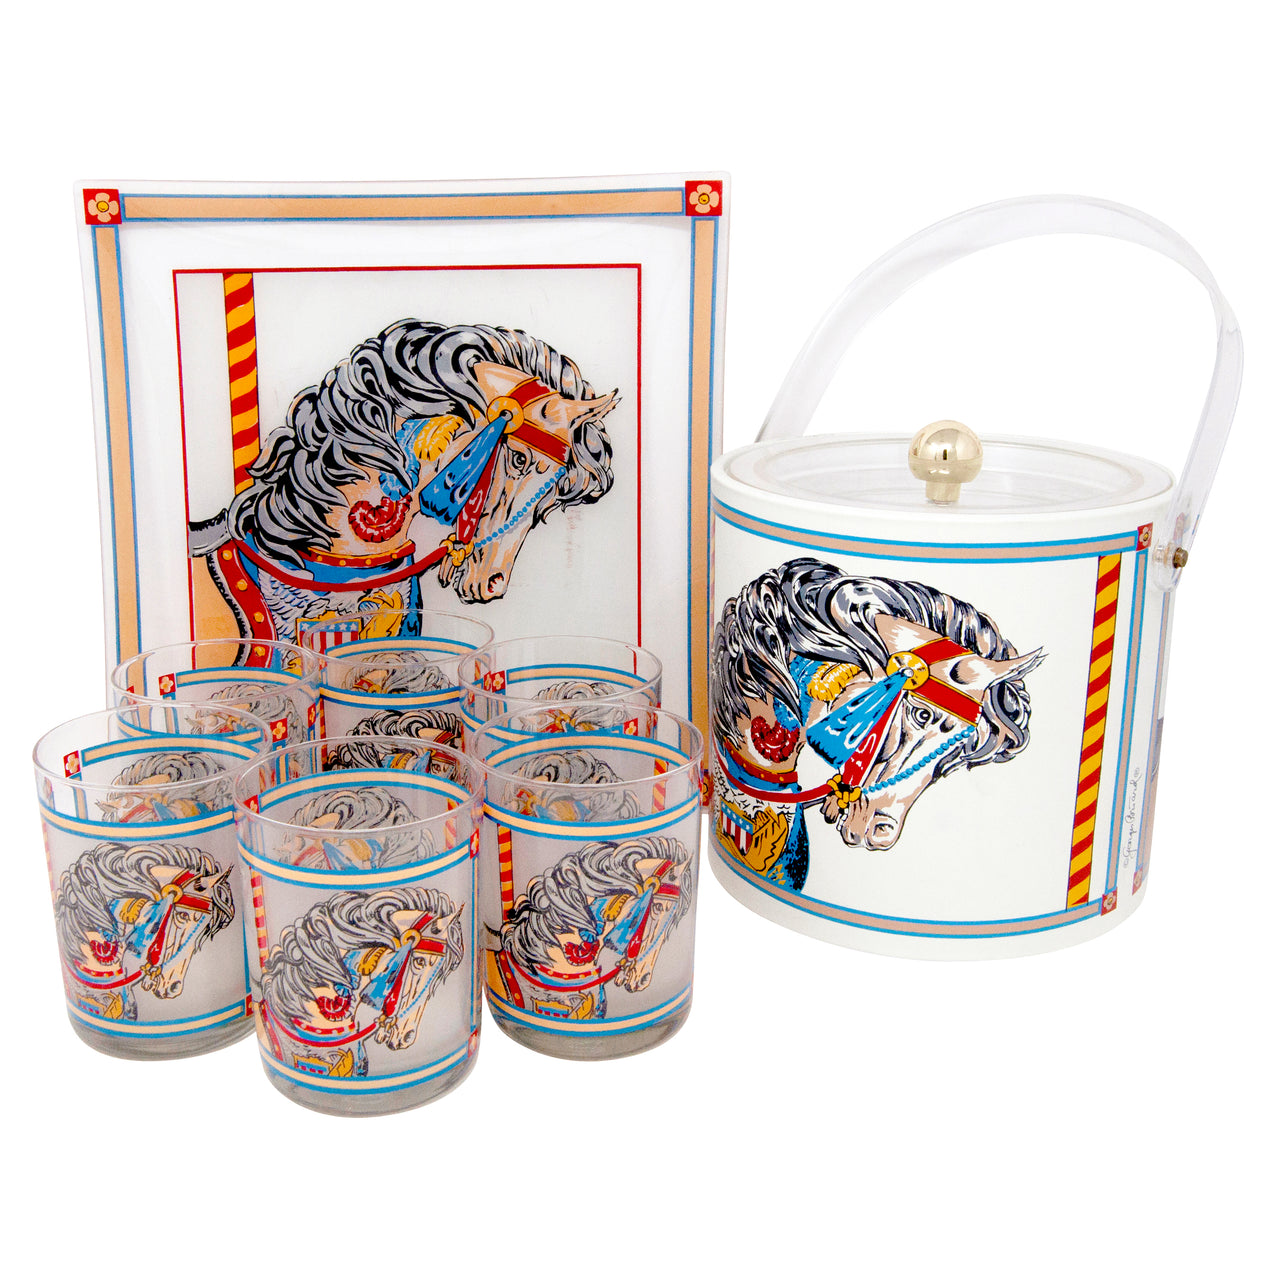 Vintage Georges Briard Carousel Horse Cocktail Set | The Hour Shop